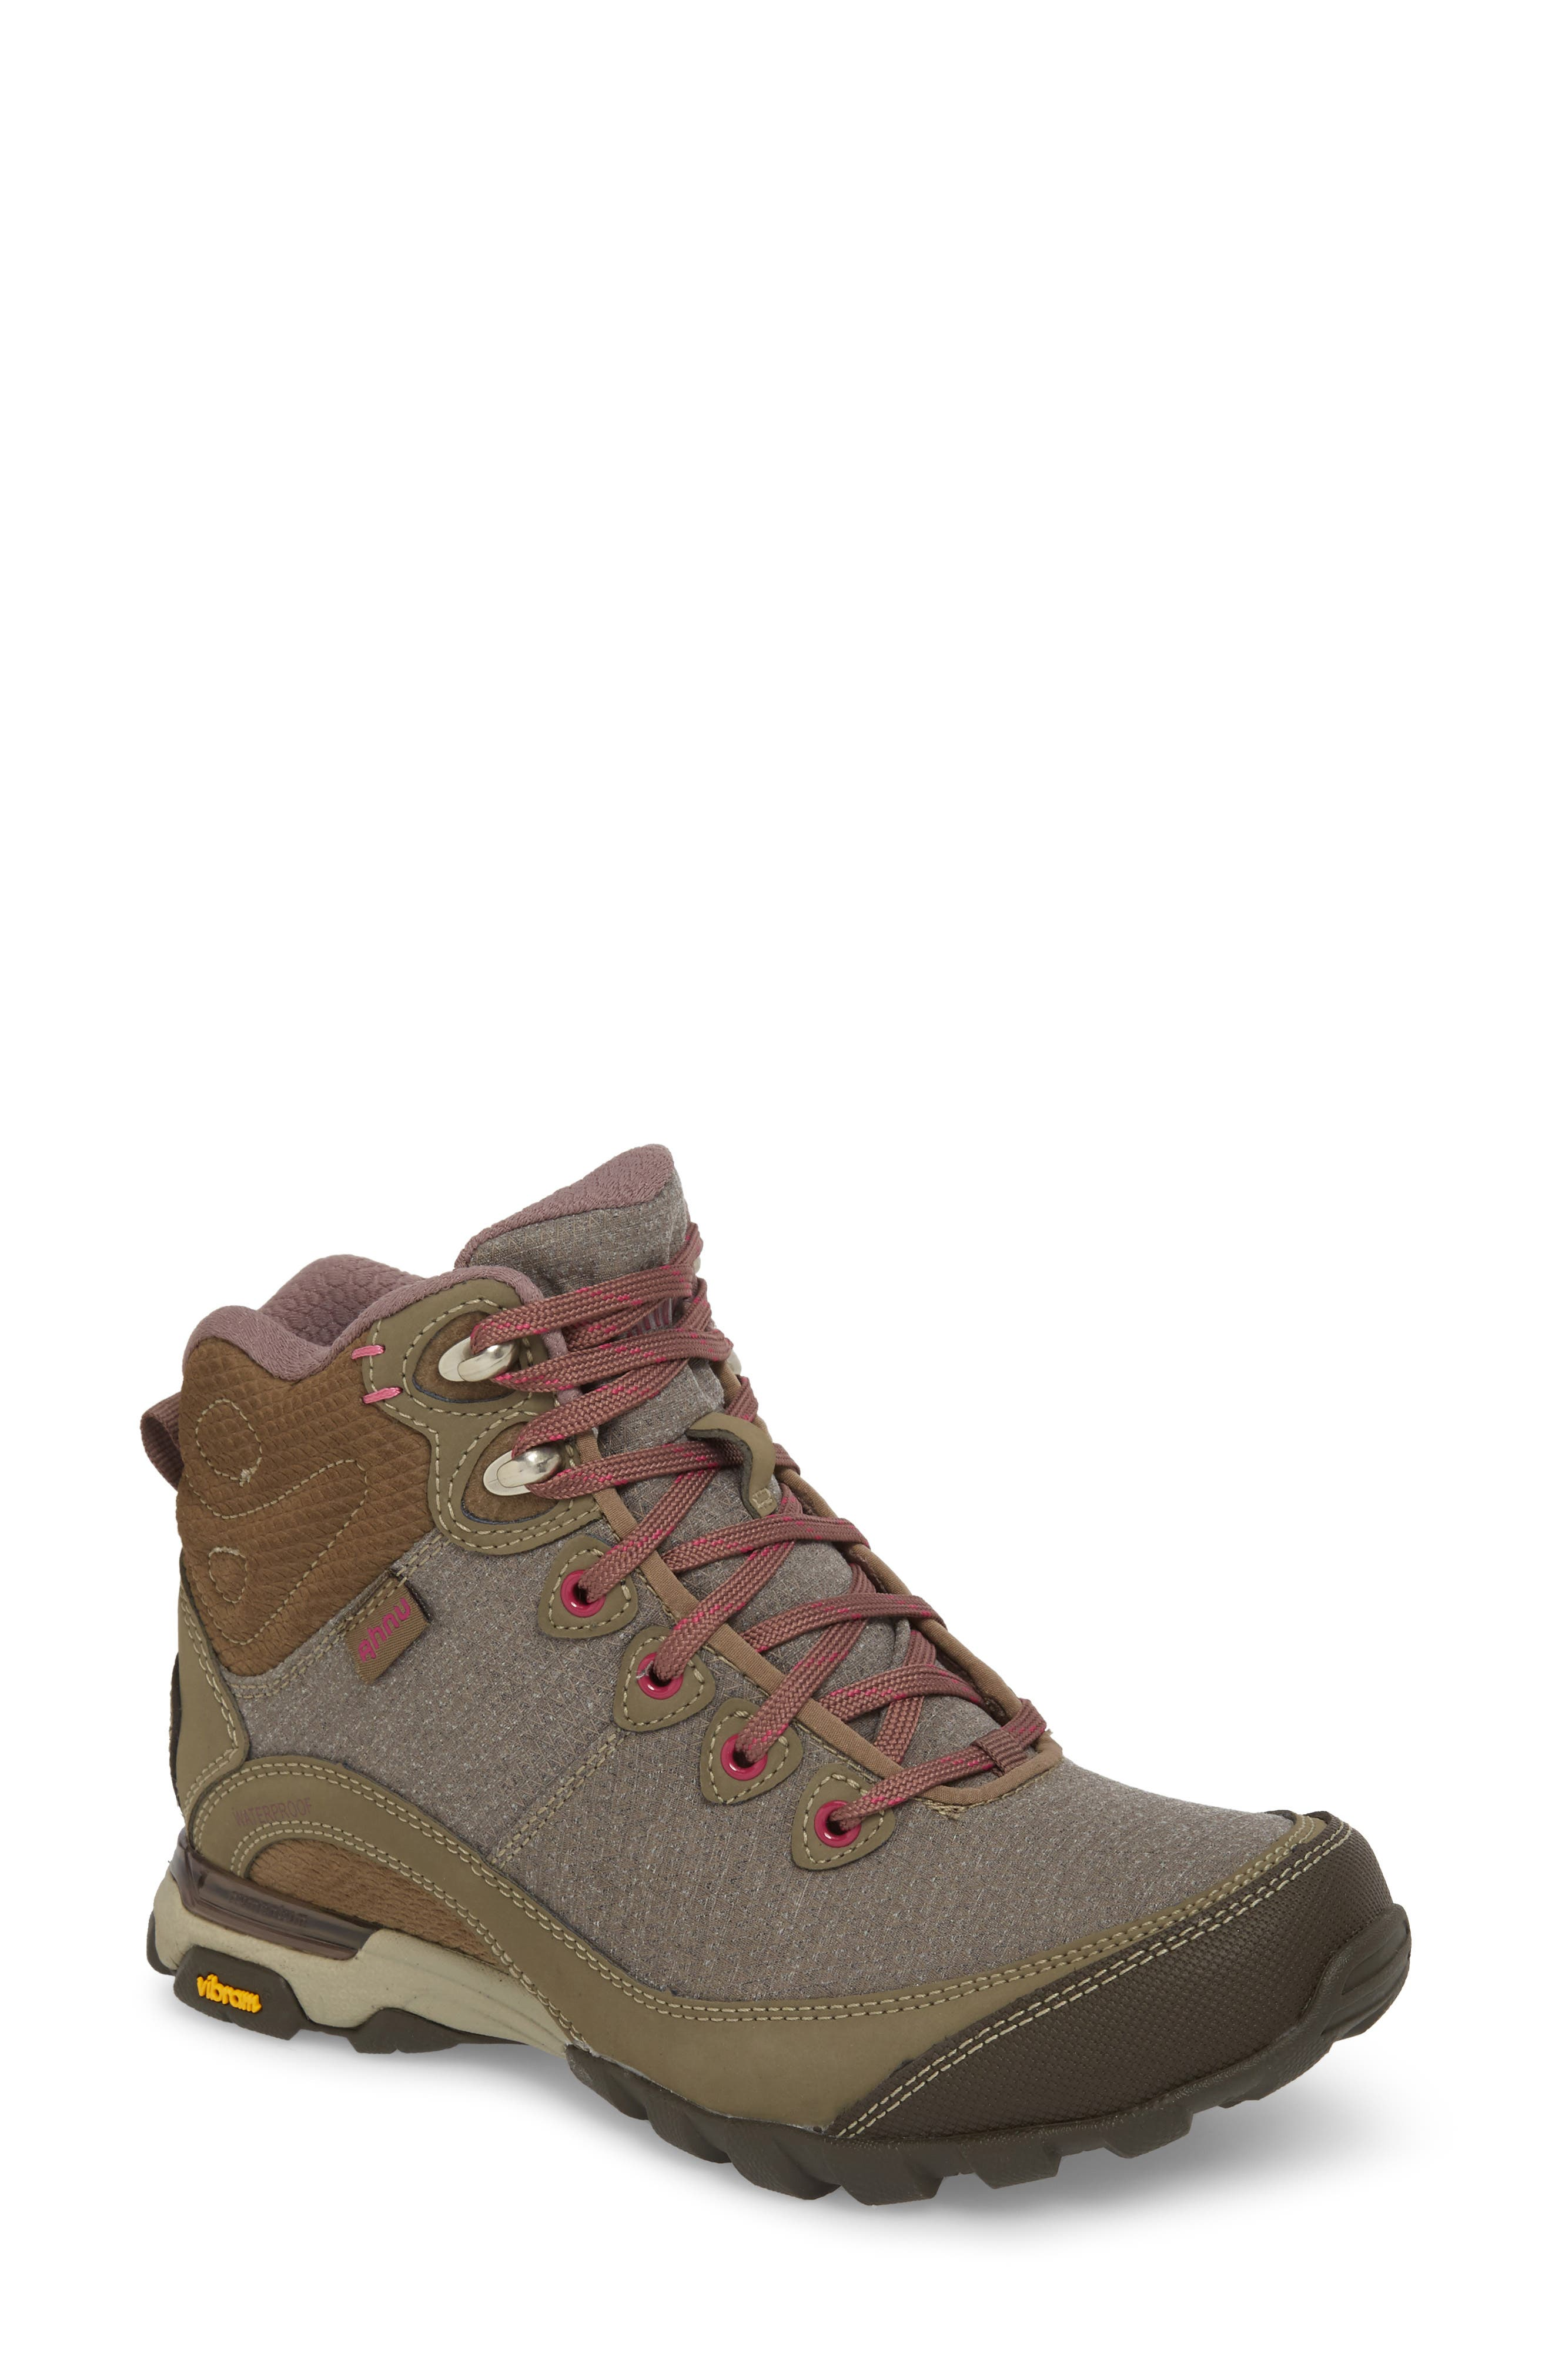 Ahnu By Teva Sugarpine Ii Waterproof Hiking Boot, Brown